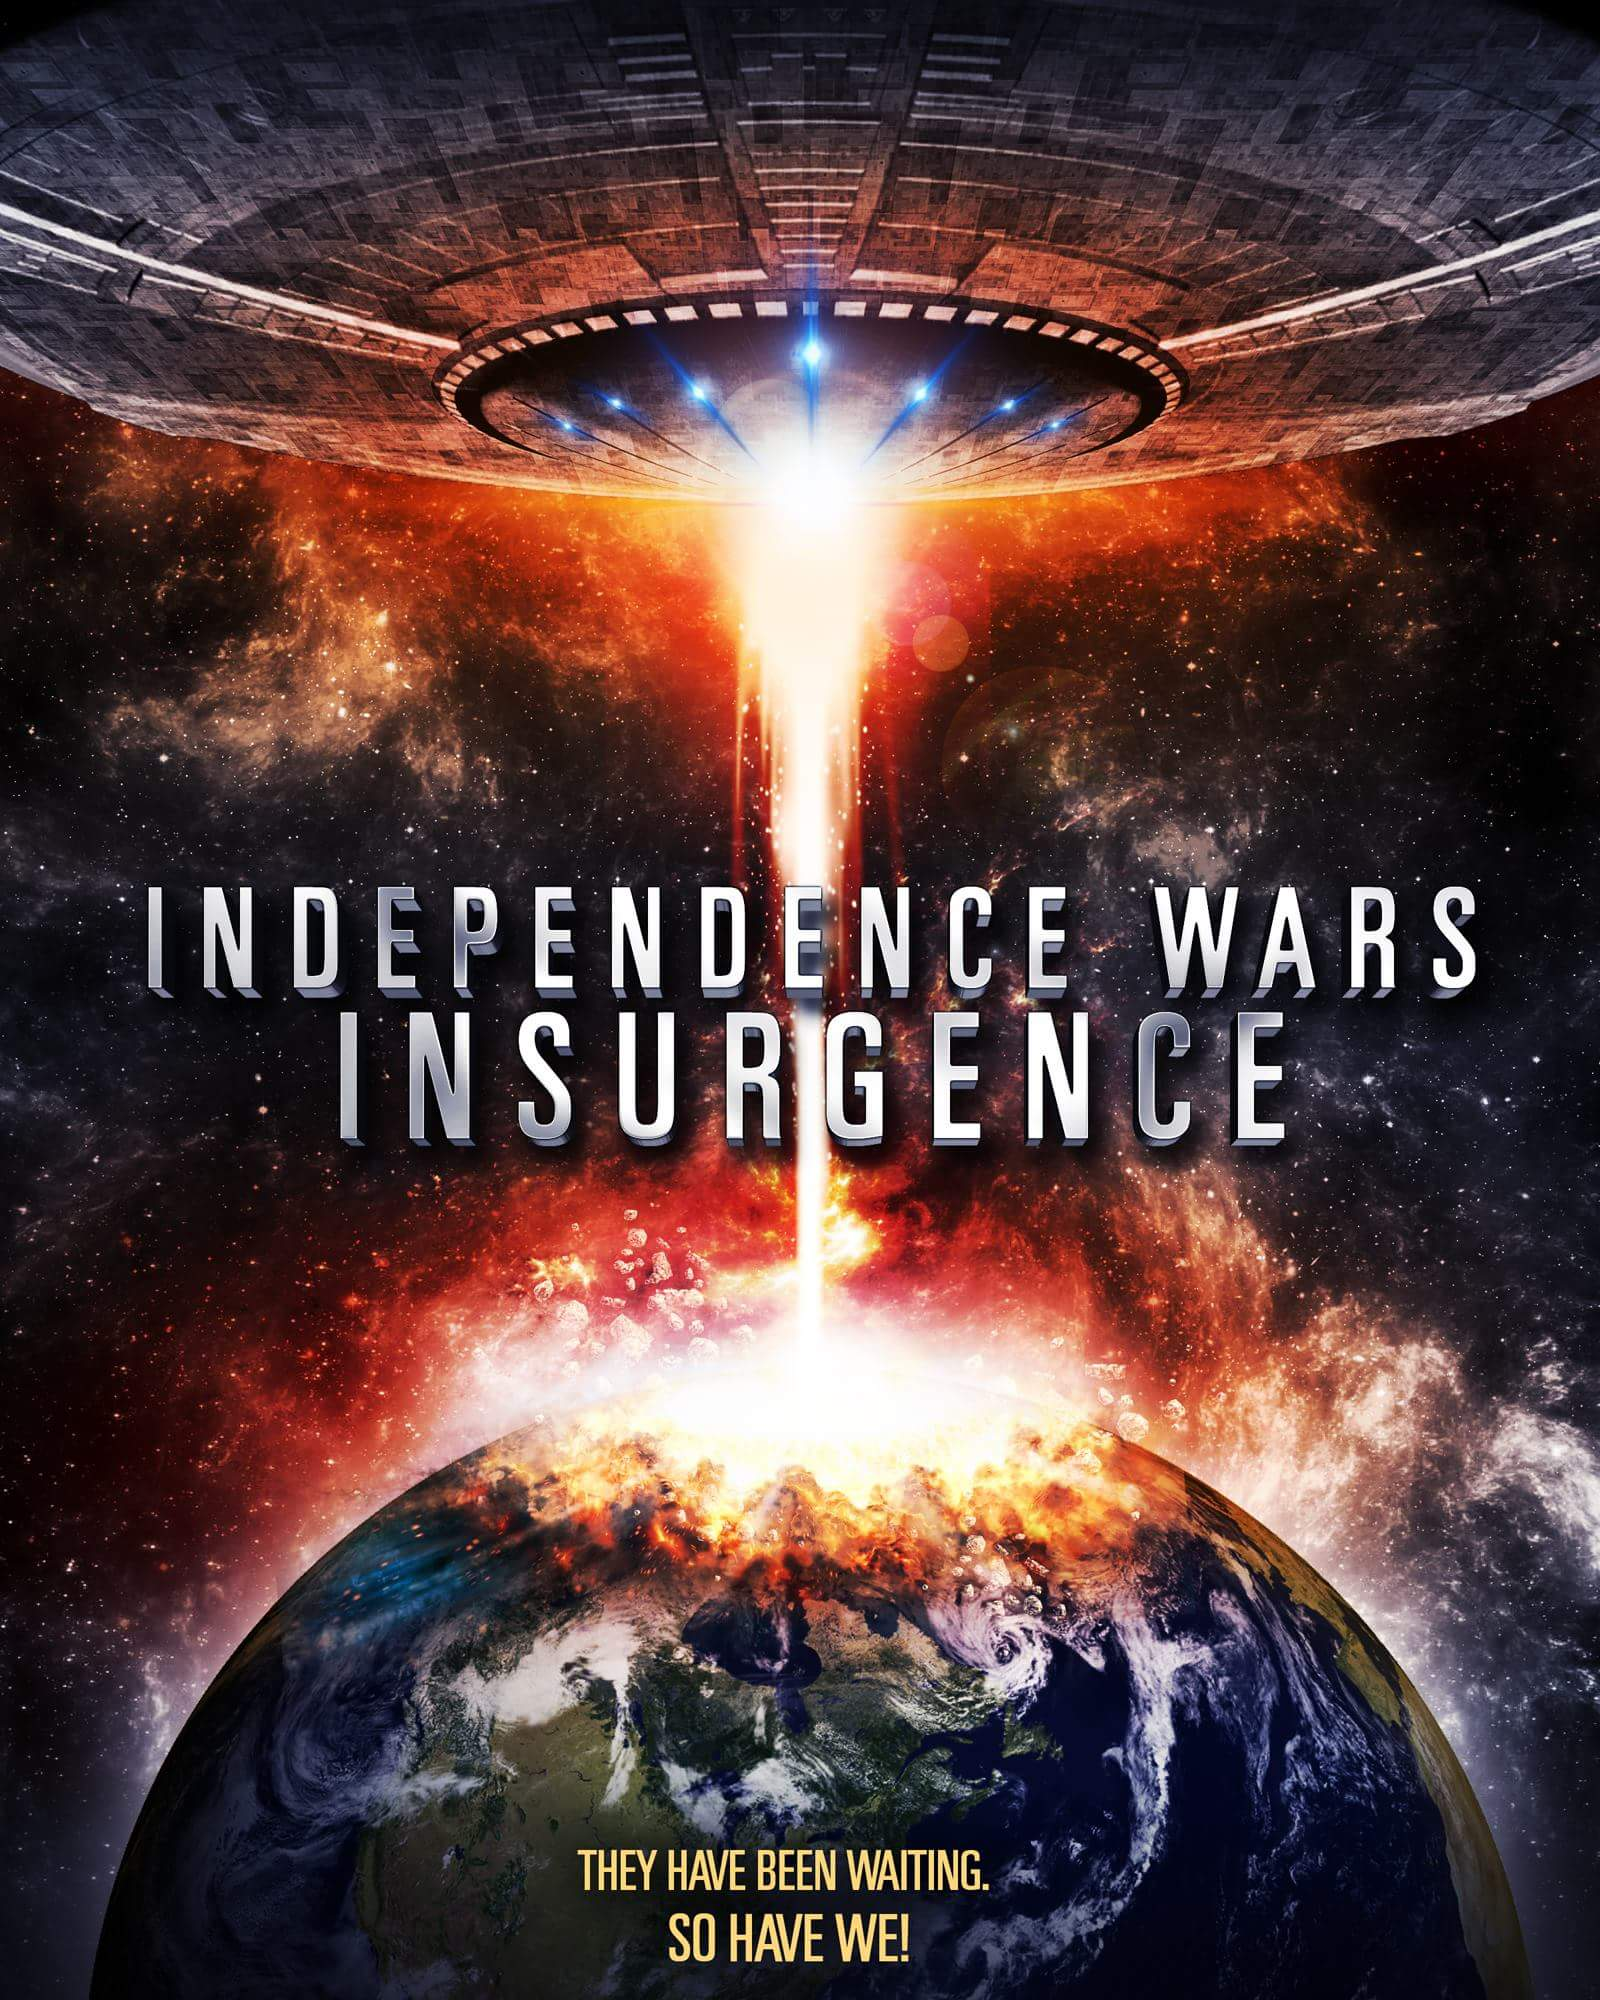 Avatar 2 Movie Trailer: Independence Wars Insurgence